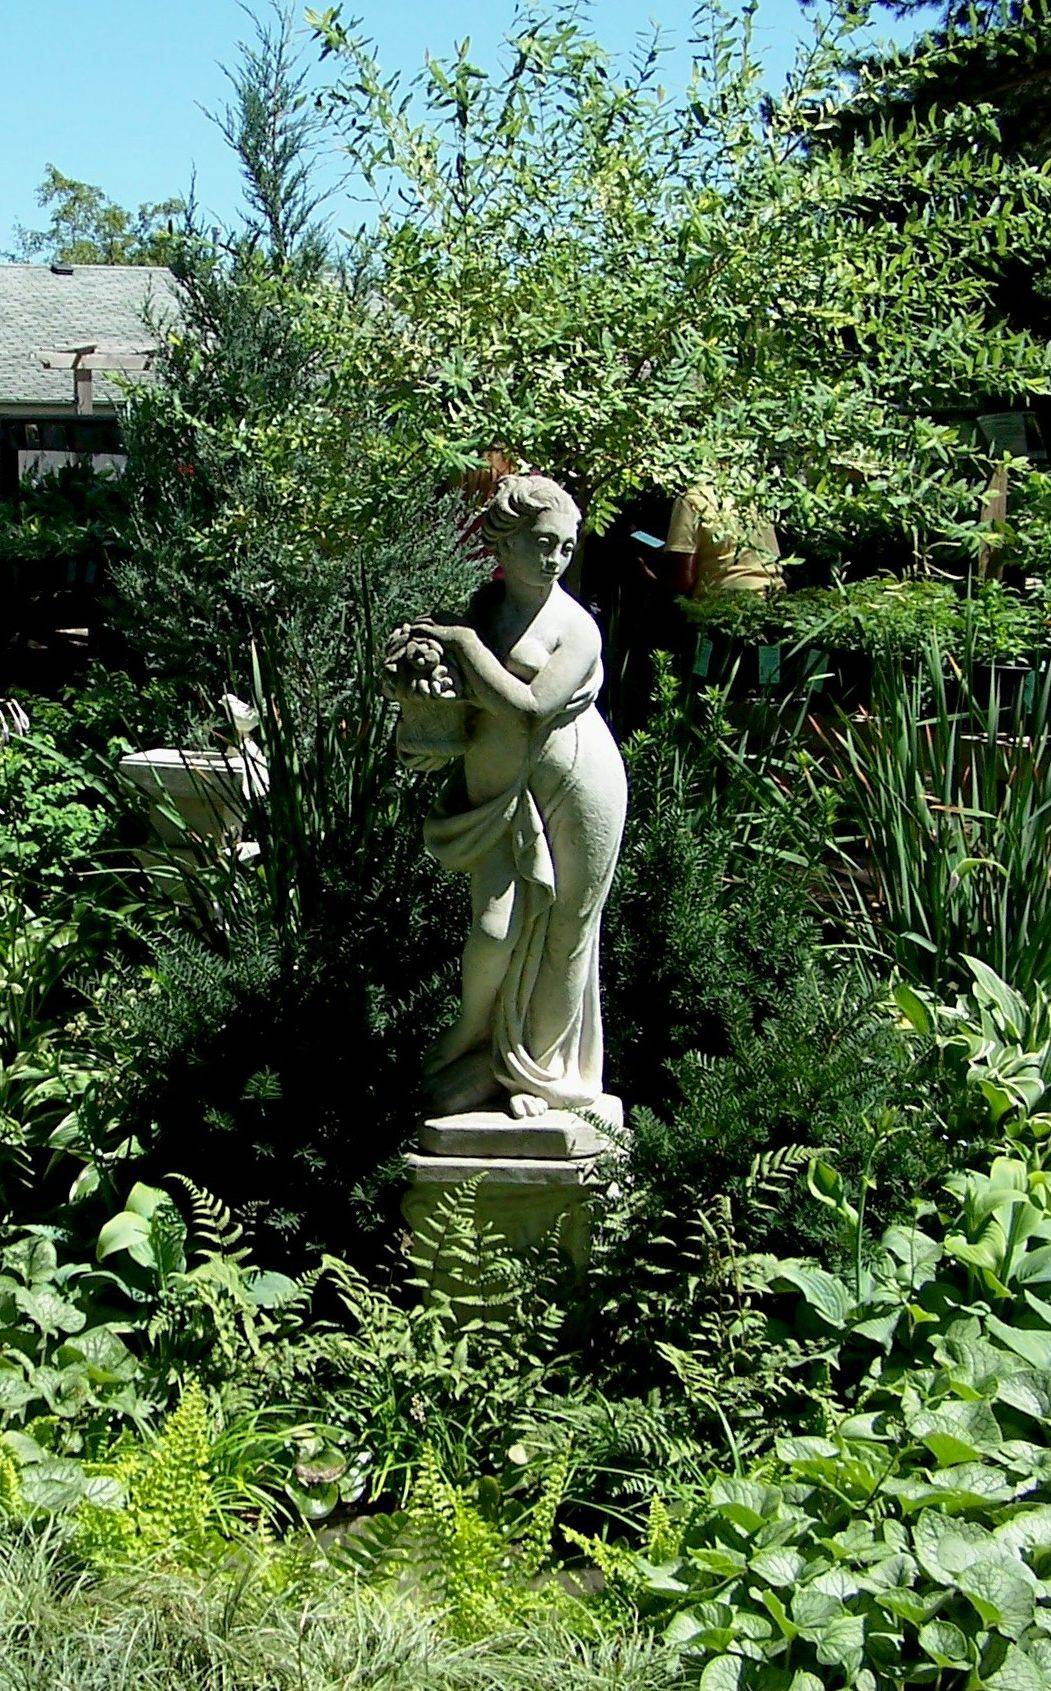 An elegant statue stands in the shade garden, creating a focal point.